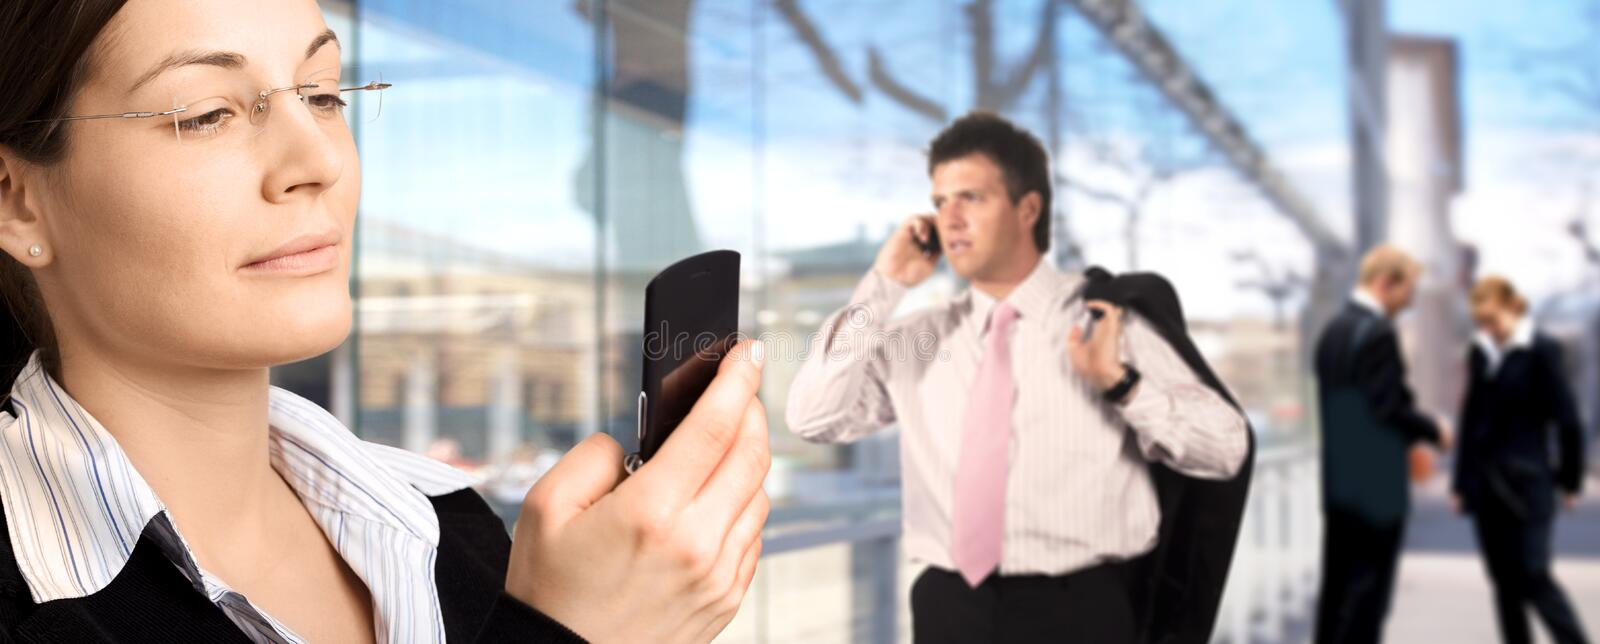 Business panorama. Businesspeople are calling on mobiles in front of a modern office building